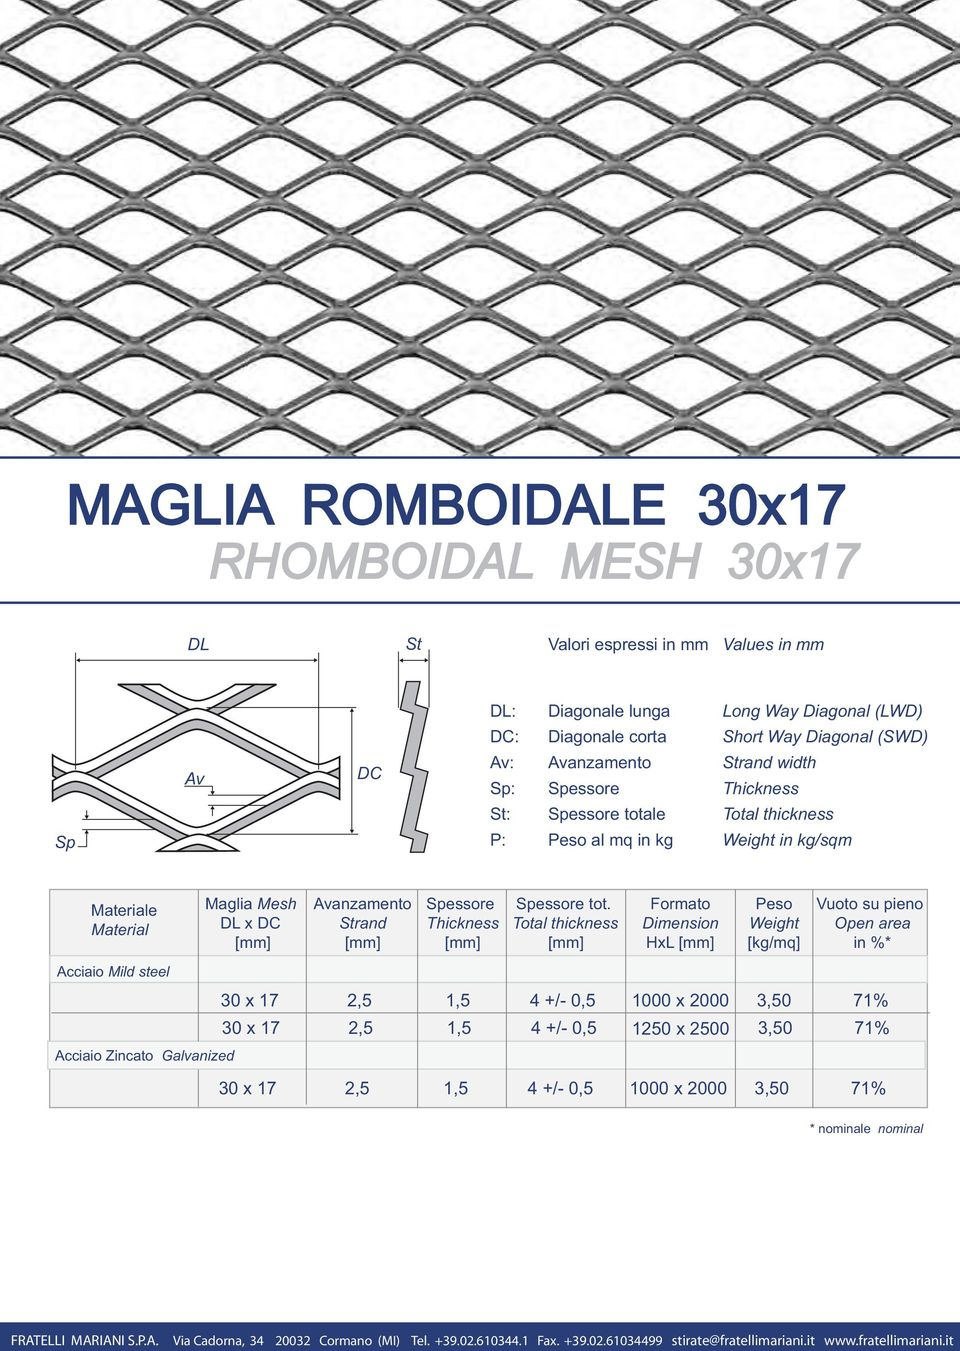 totale P: al mq in kg in kg/sqm e x tot.